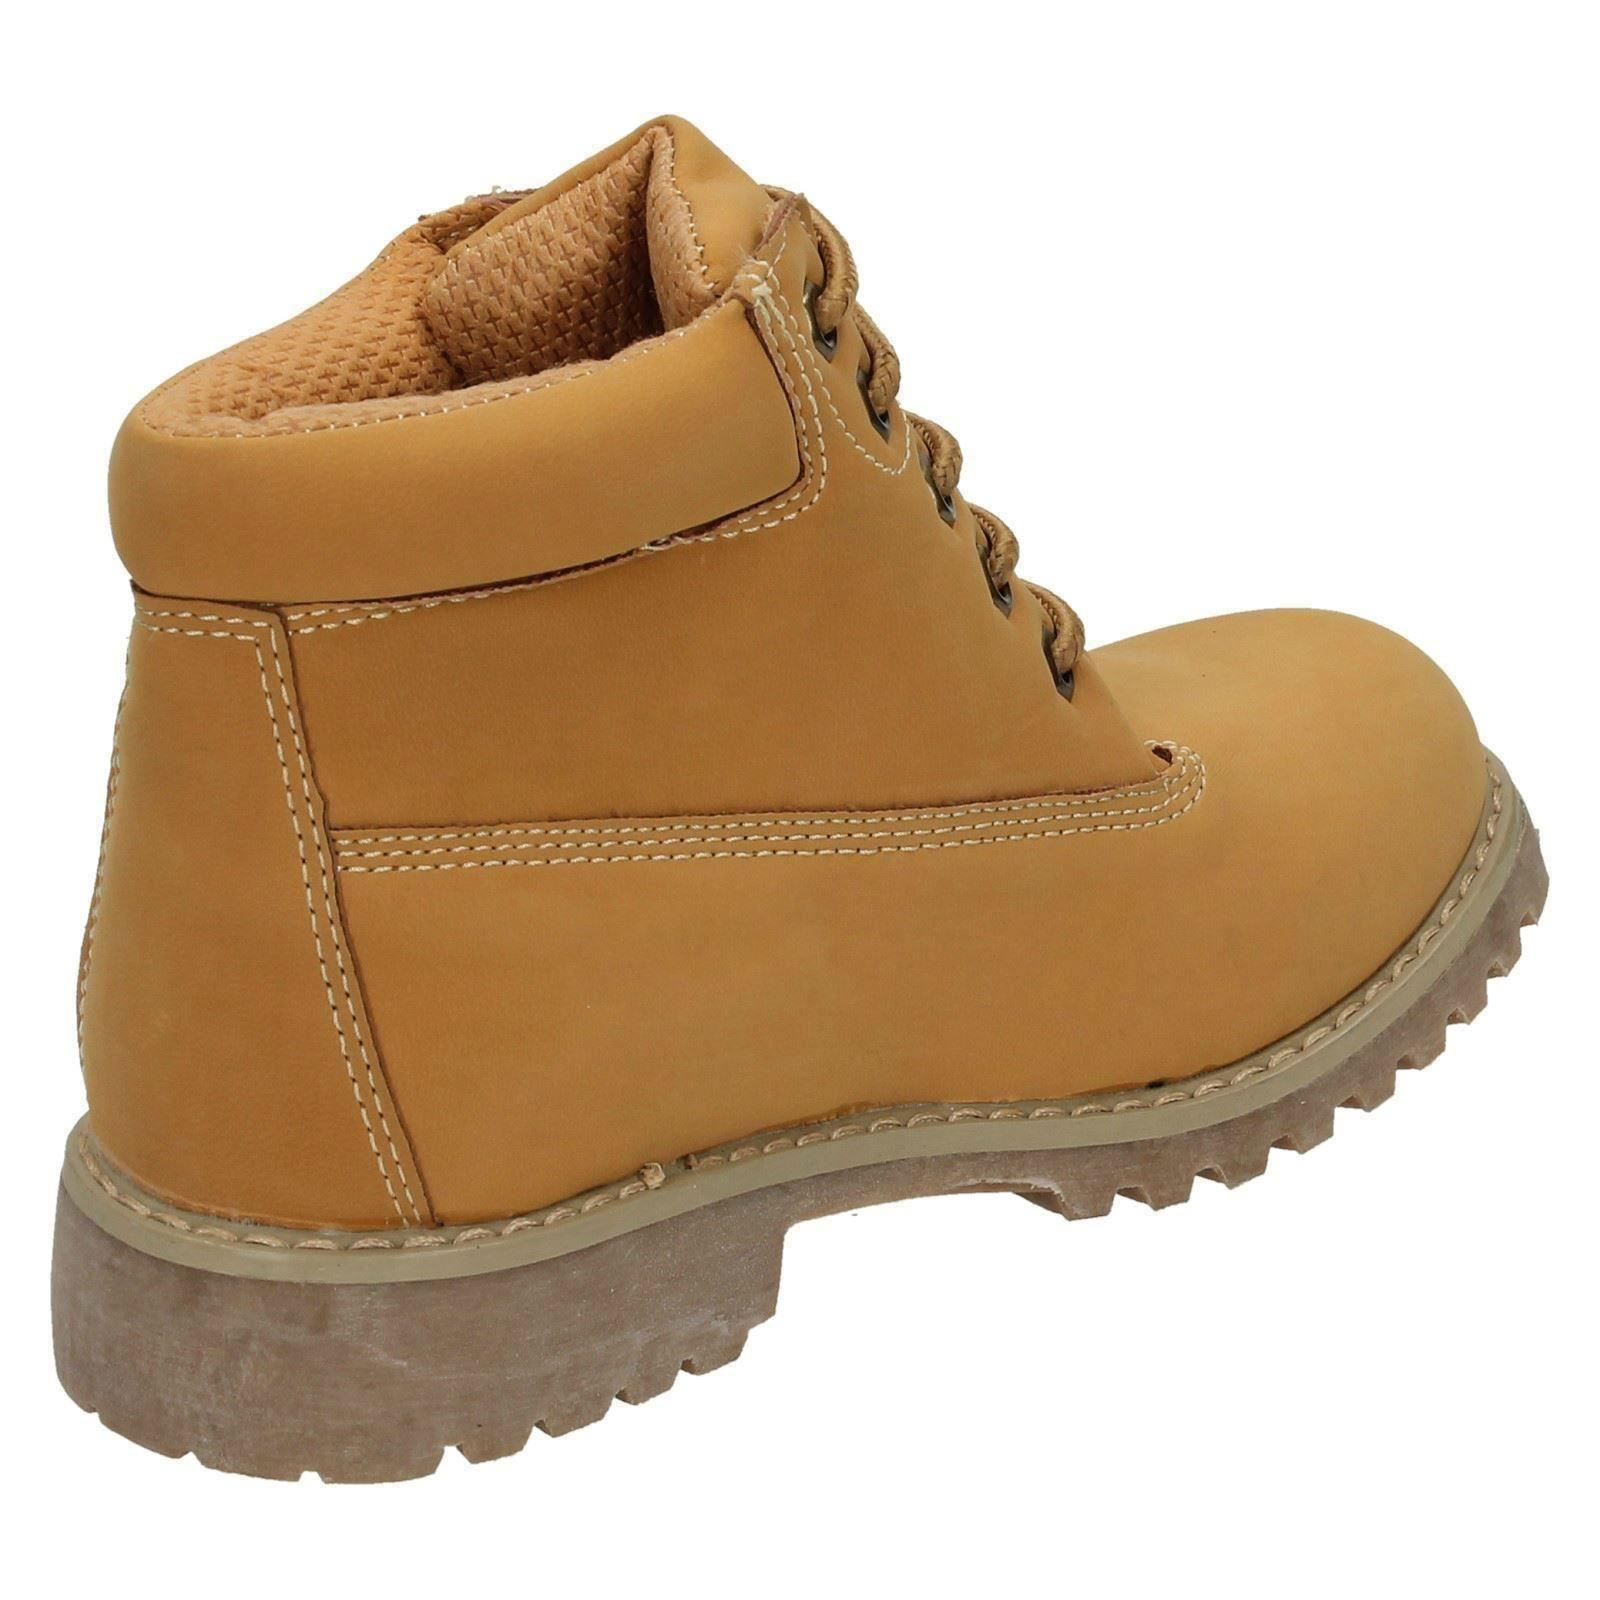 Childrens Spot On Unisex Casual Low Heel Ankle Boots